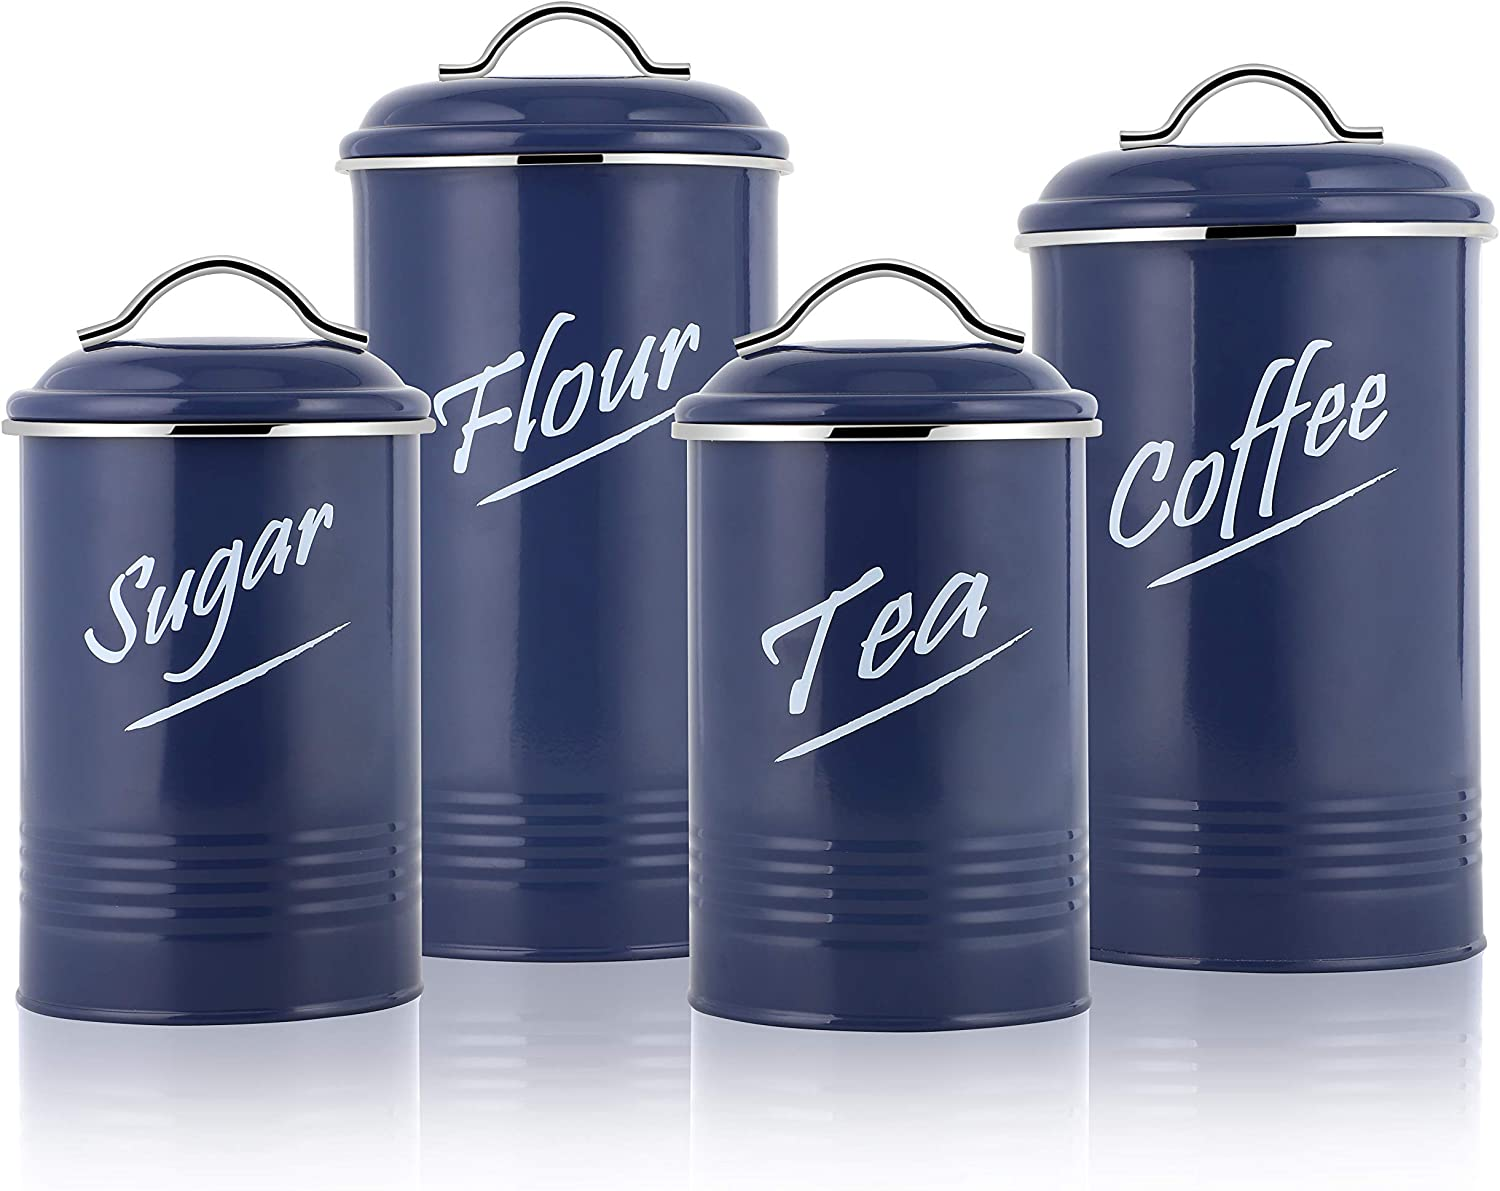 Hillbond Food Storage Canisters Containers: Carbon Steel with Blue Powder Coated Decorative Storage Jars Set of 4